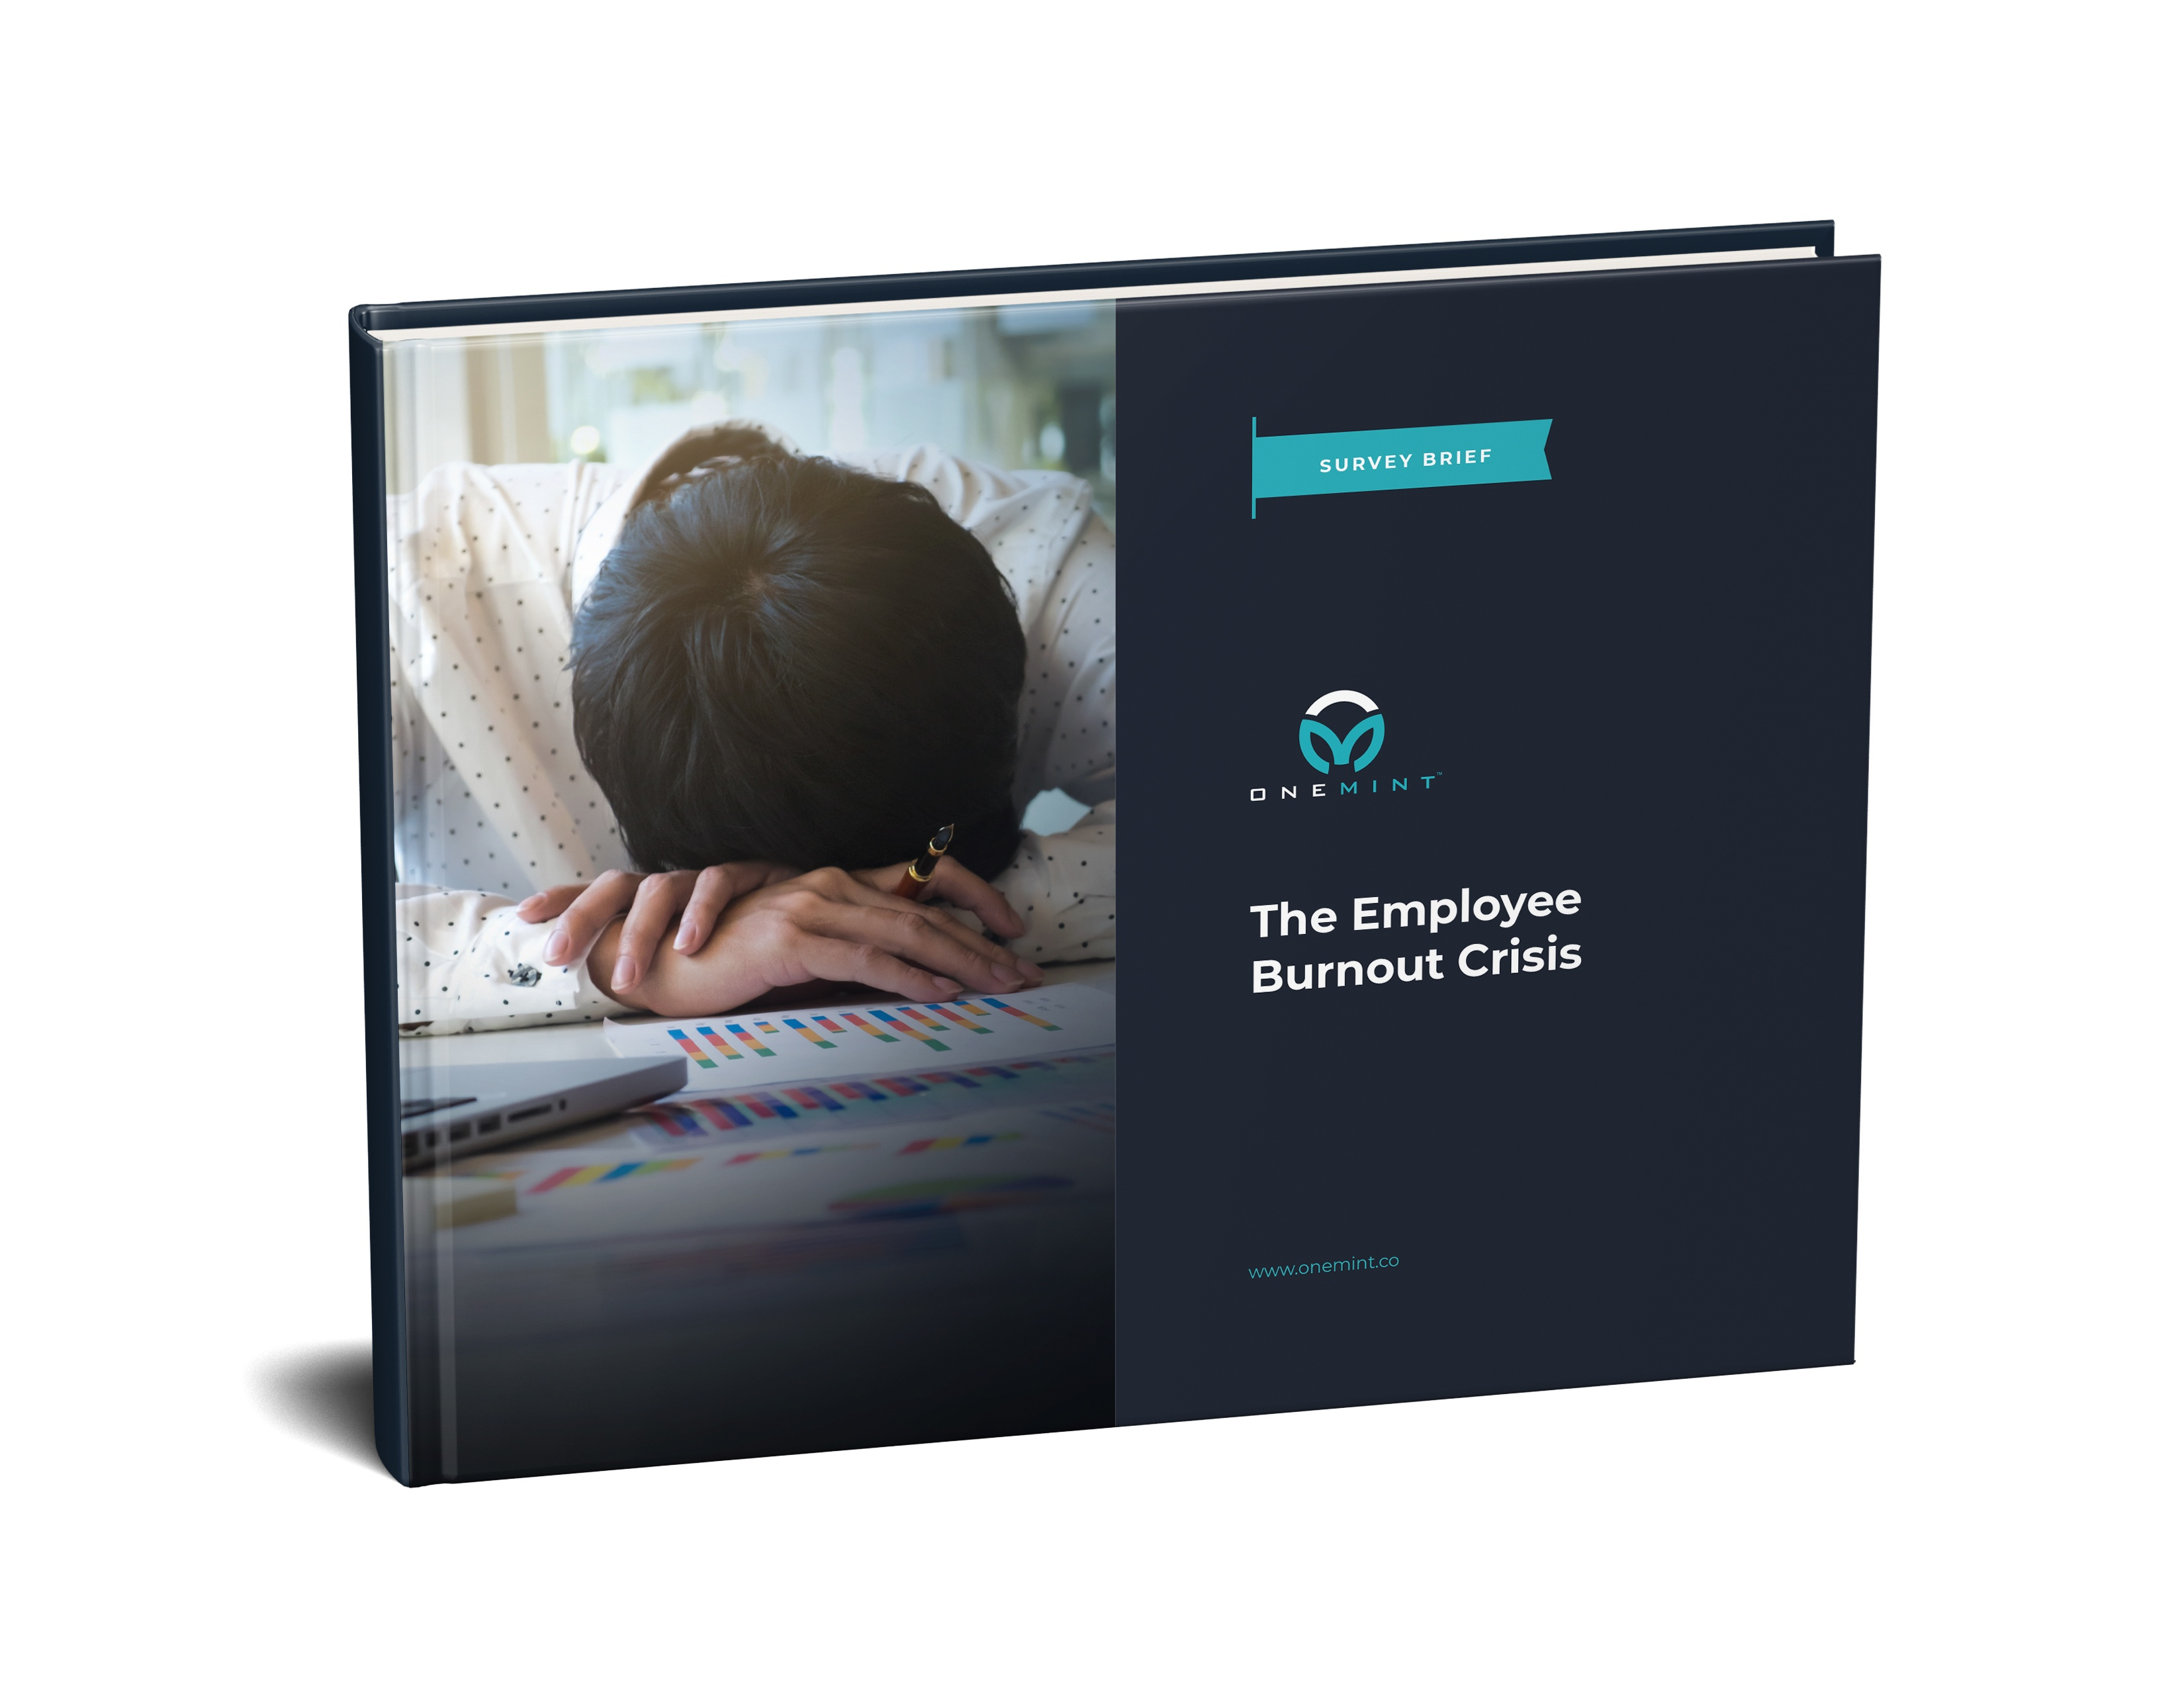 Survey Brief - The Solution to Employee Burnout